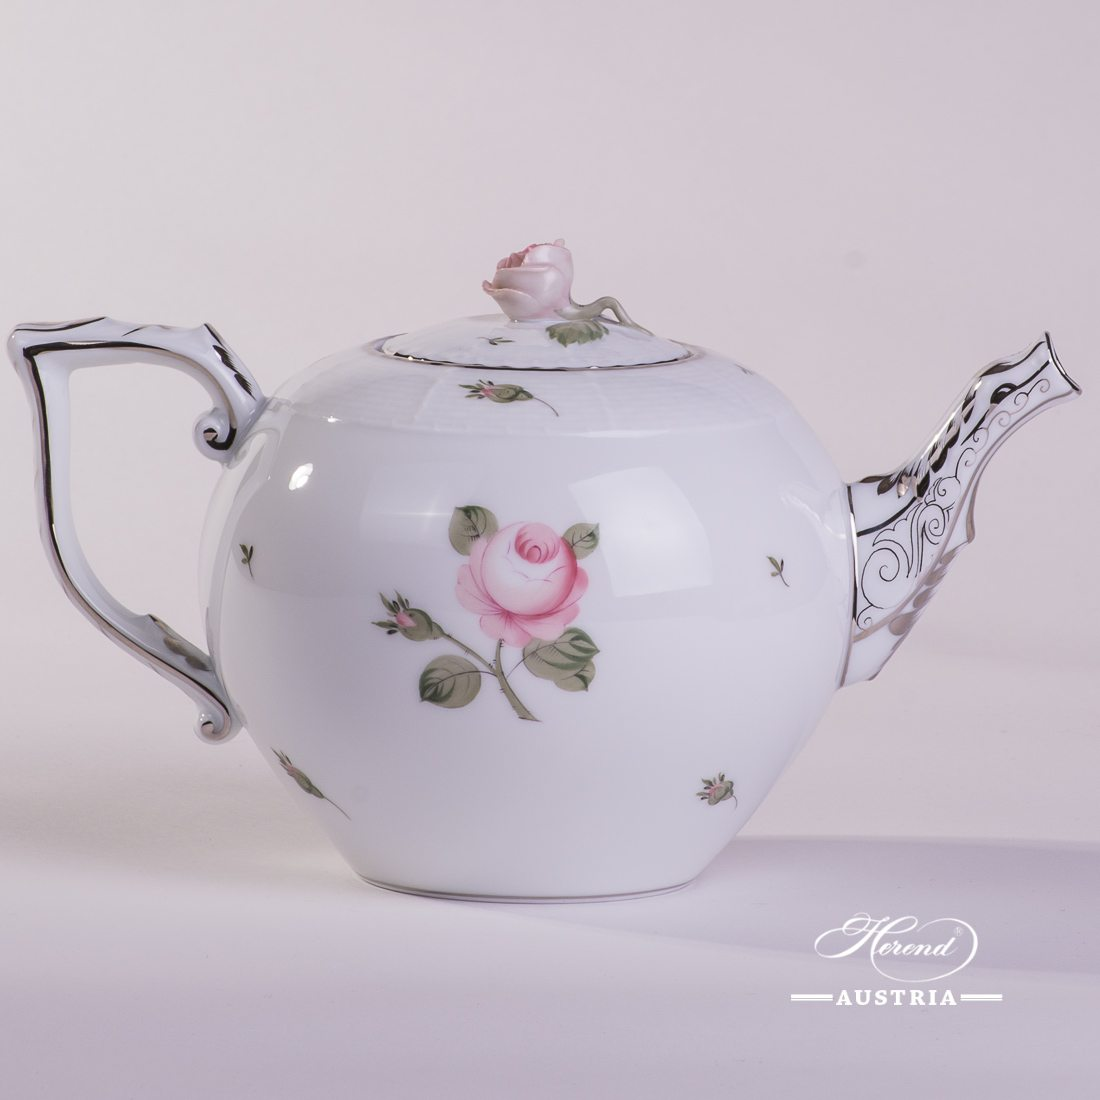 Tea Pot w. Rose Knob 605-0-09 VGR-PT Vienna Rose Grand w. Platinum pattern. Herend fine china. Hand painted tableware